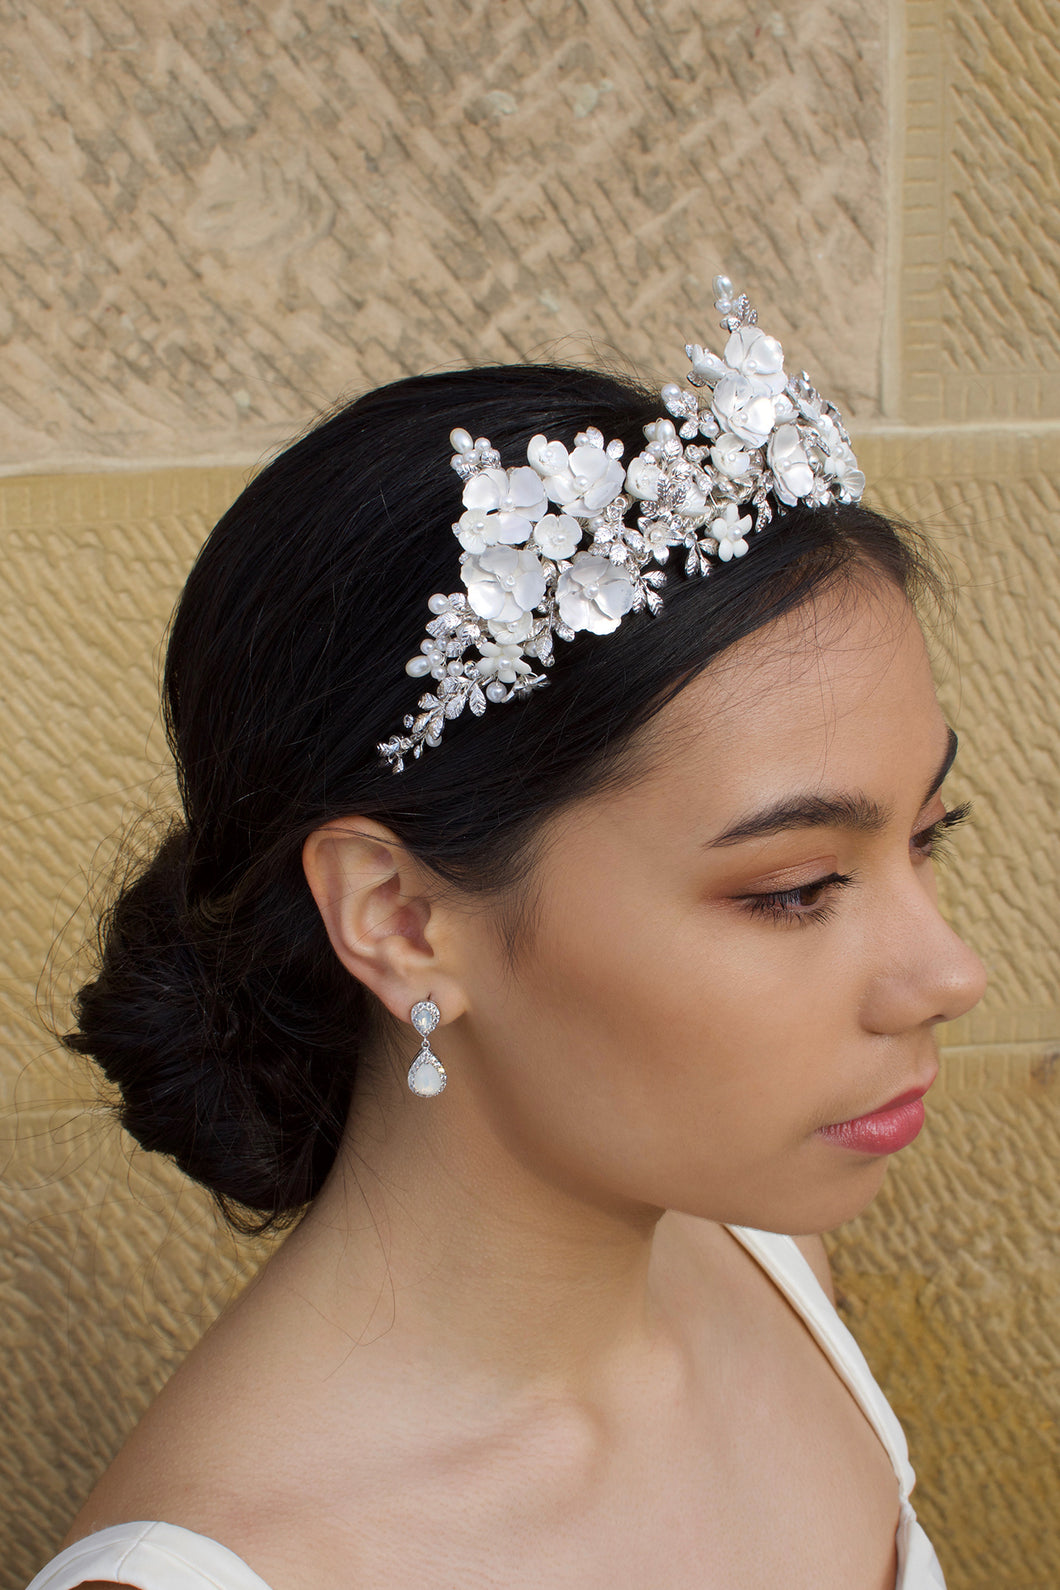 A dark haired bride wears a three pointed flower tiara at the front of her head. Behind is a sandstone wall.